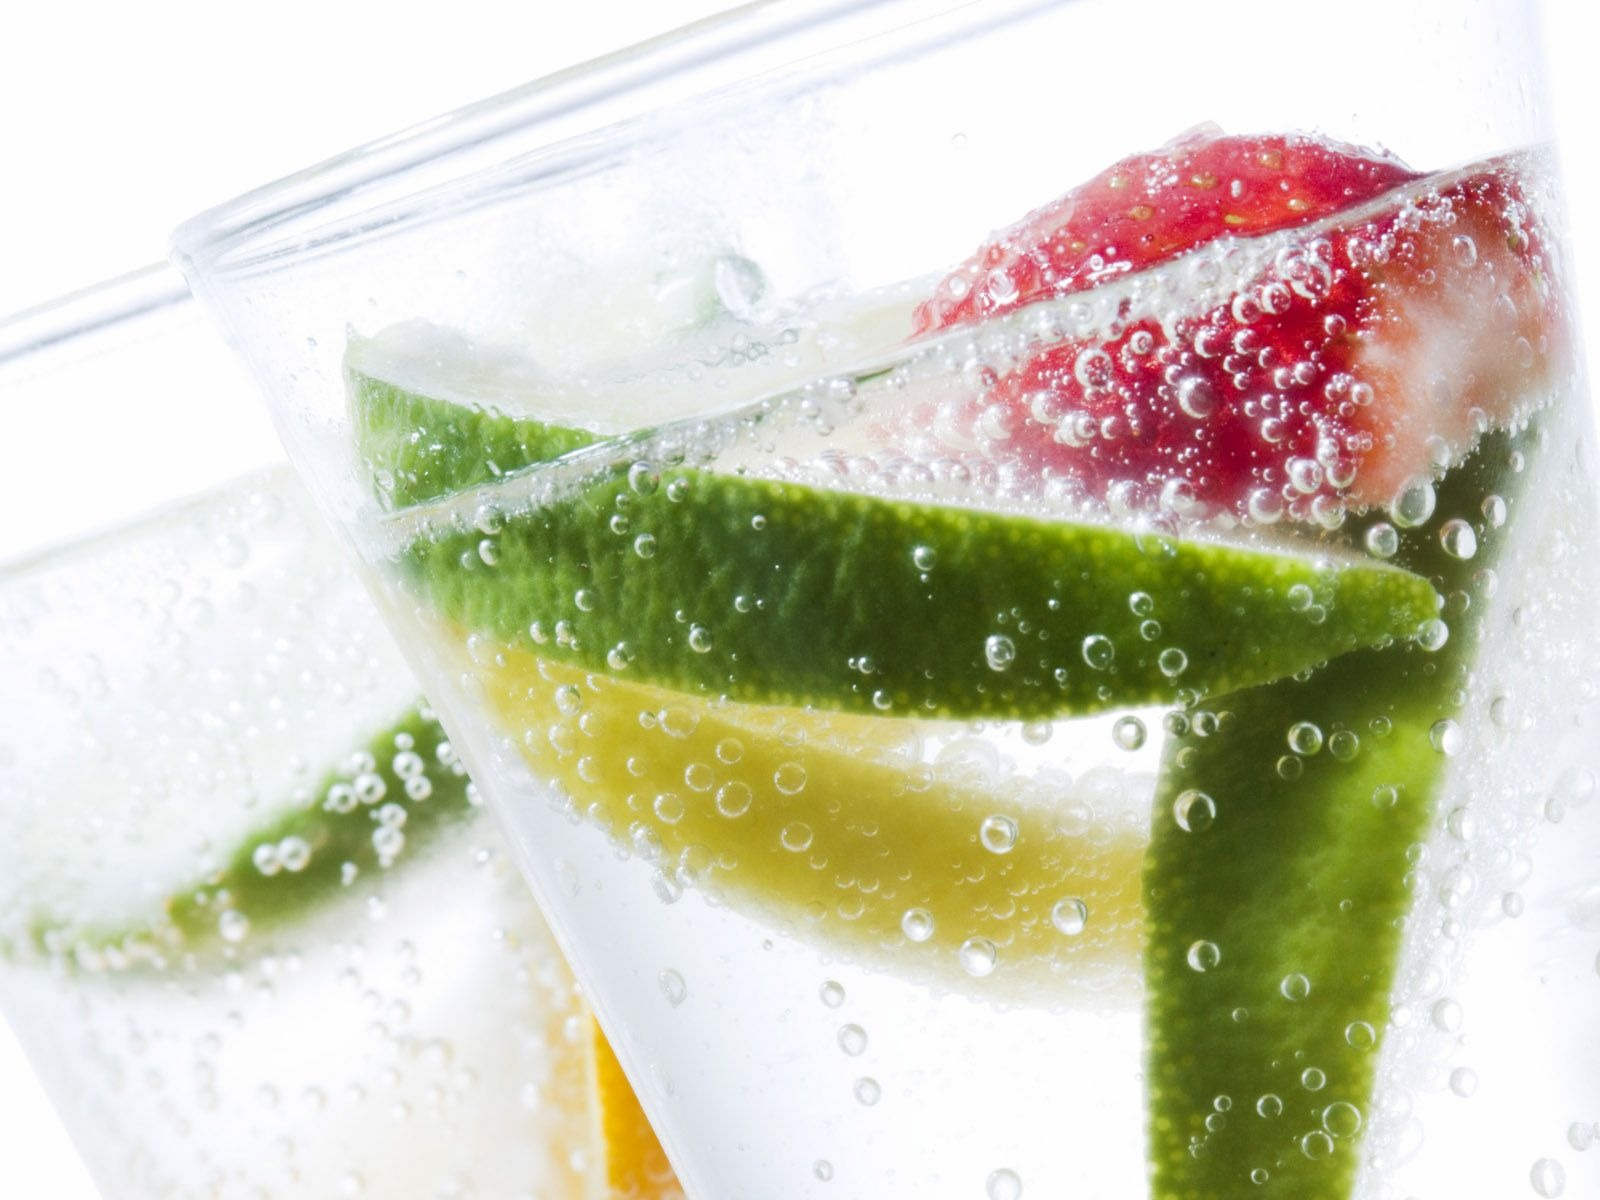 Foods You Can Add to Improve the Taste of Water